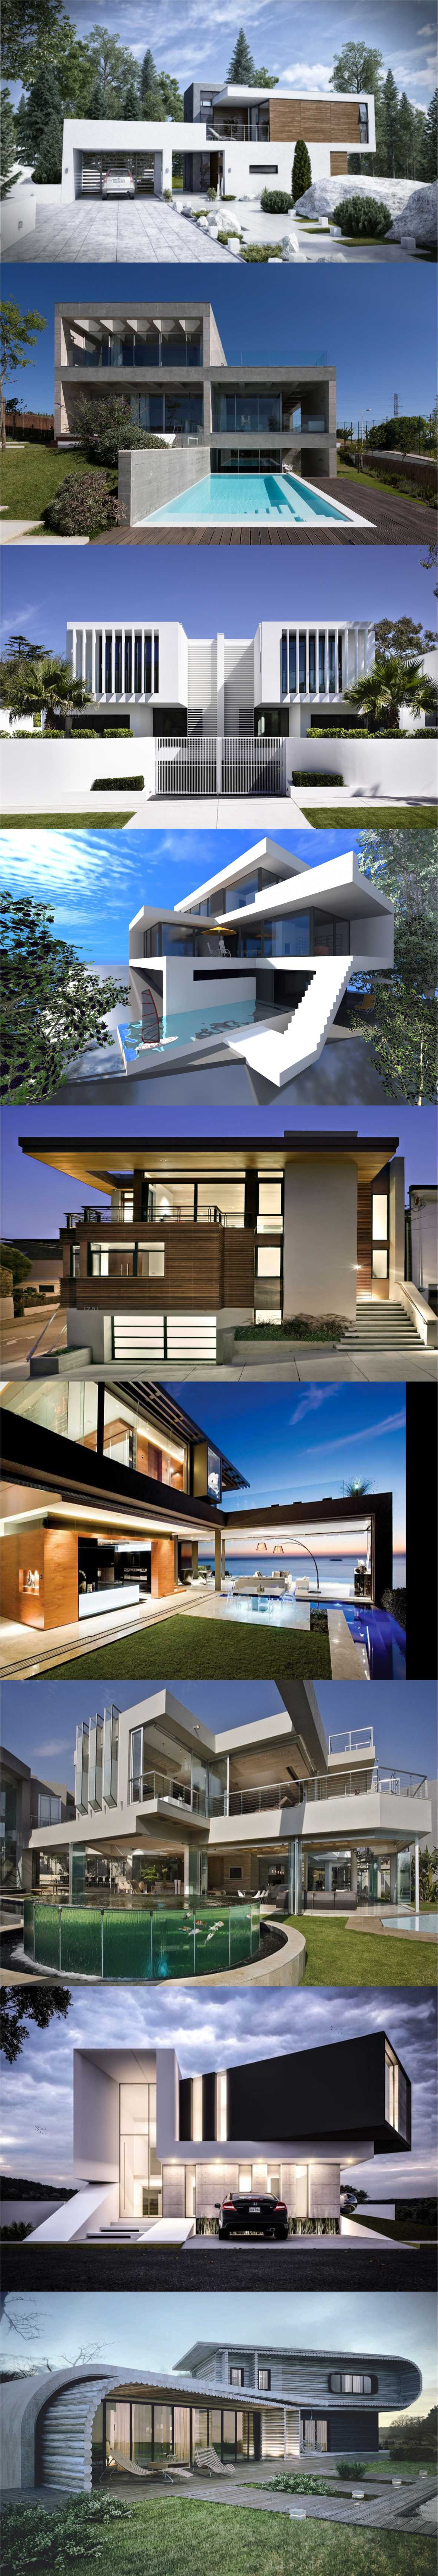 Awesome Modern House Designs 2018